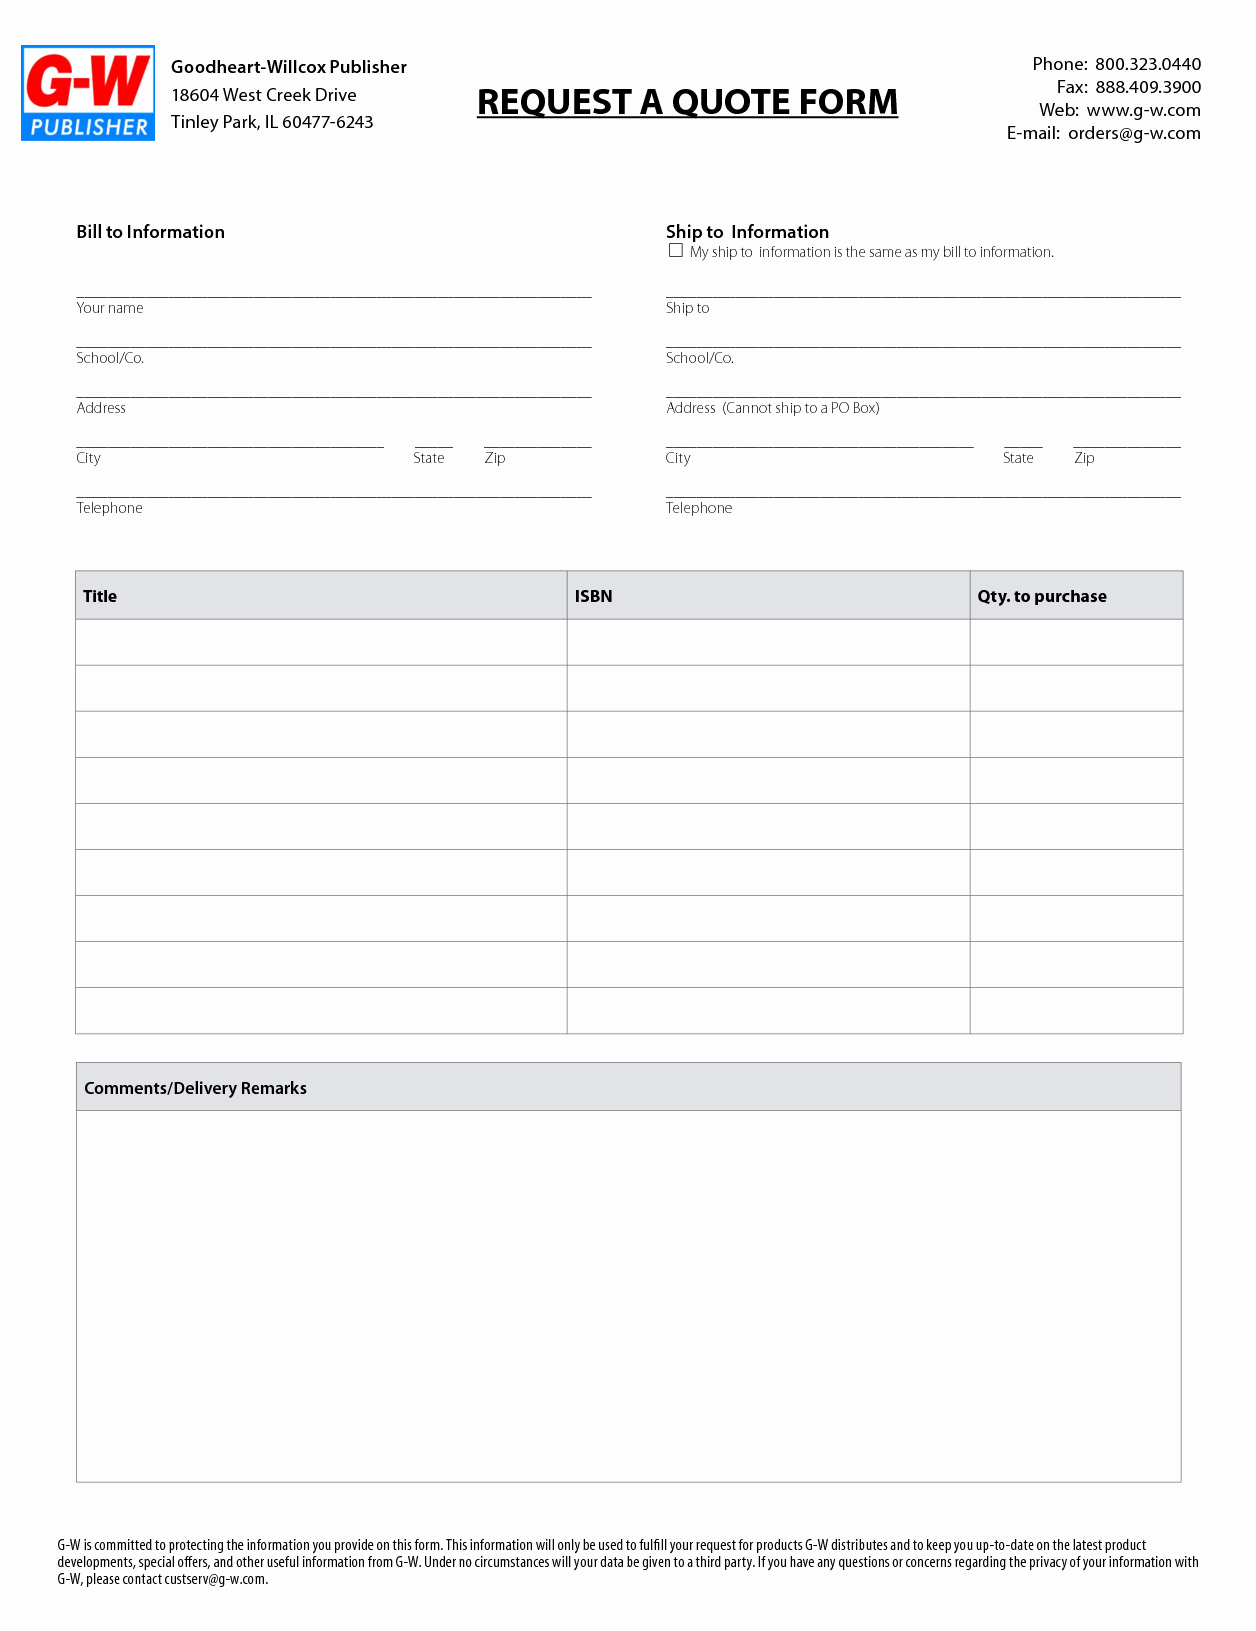 Request for Quotation Template Best Of Best S Of Rfq form Template Request for Quote